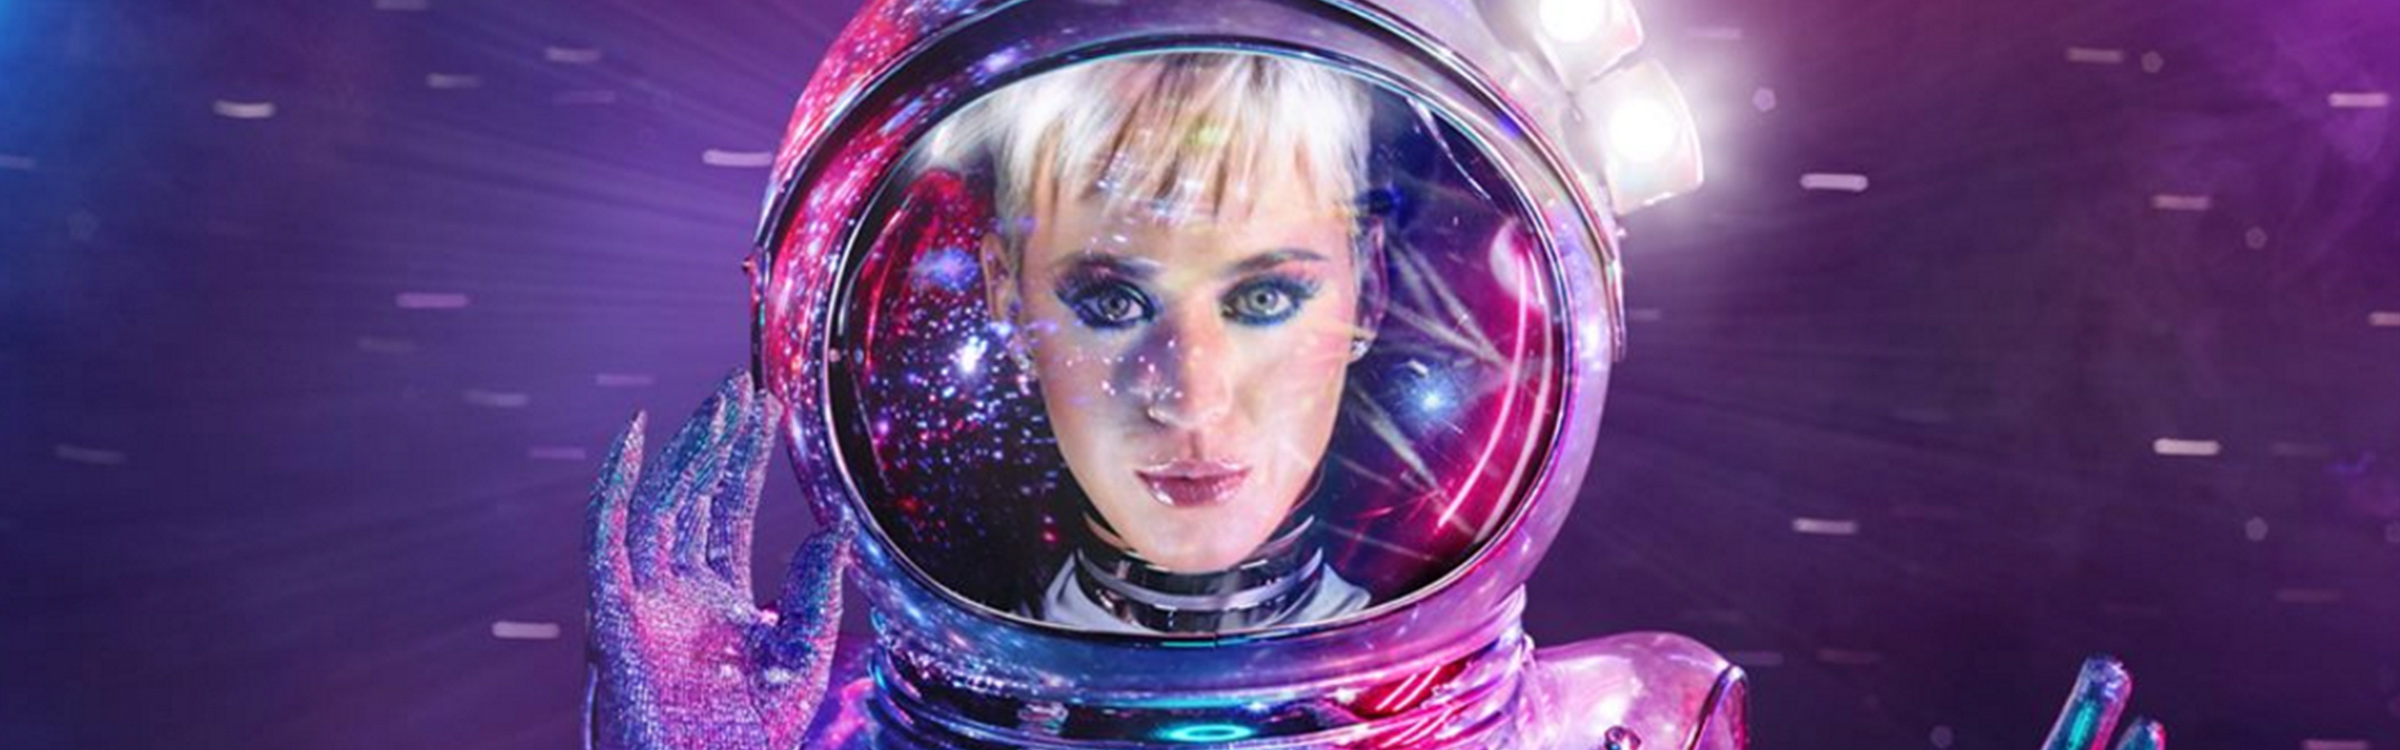 Katy mtv header